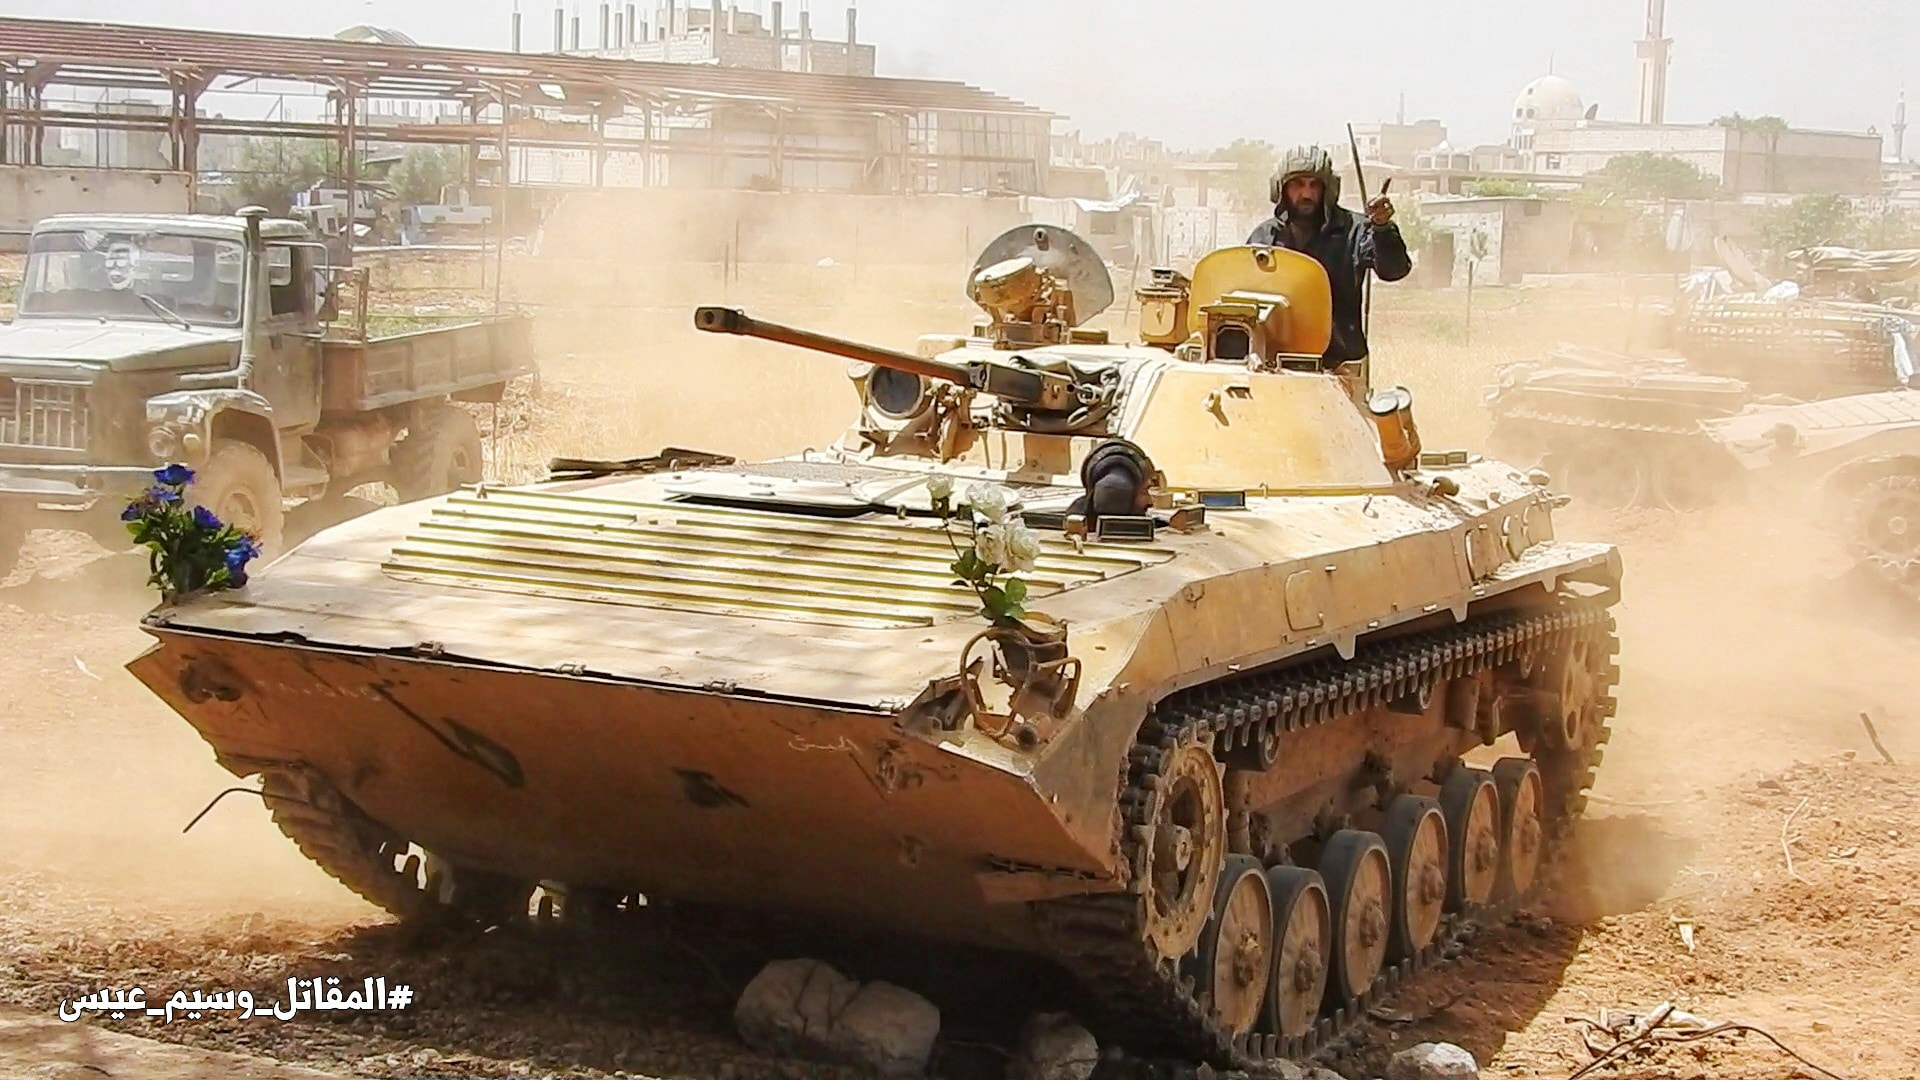 Southern Damascus: Syrian Army Liberates More Area, ISIS Launches Counter-Attack